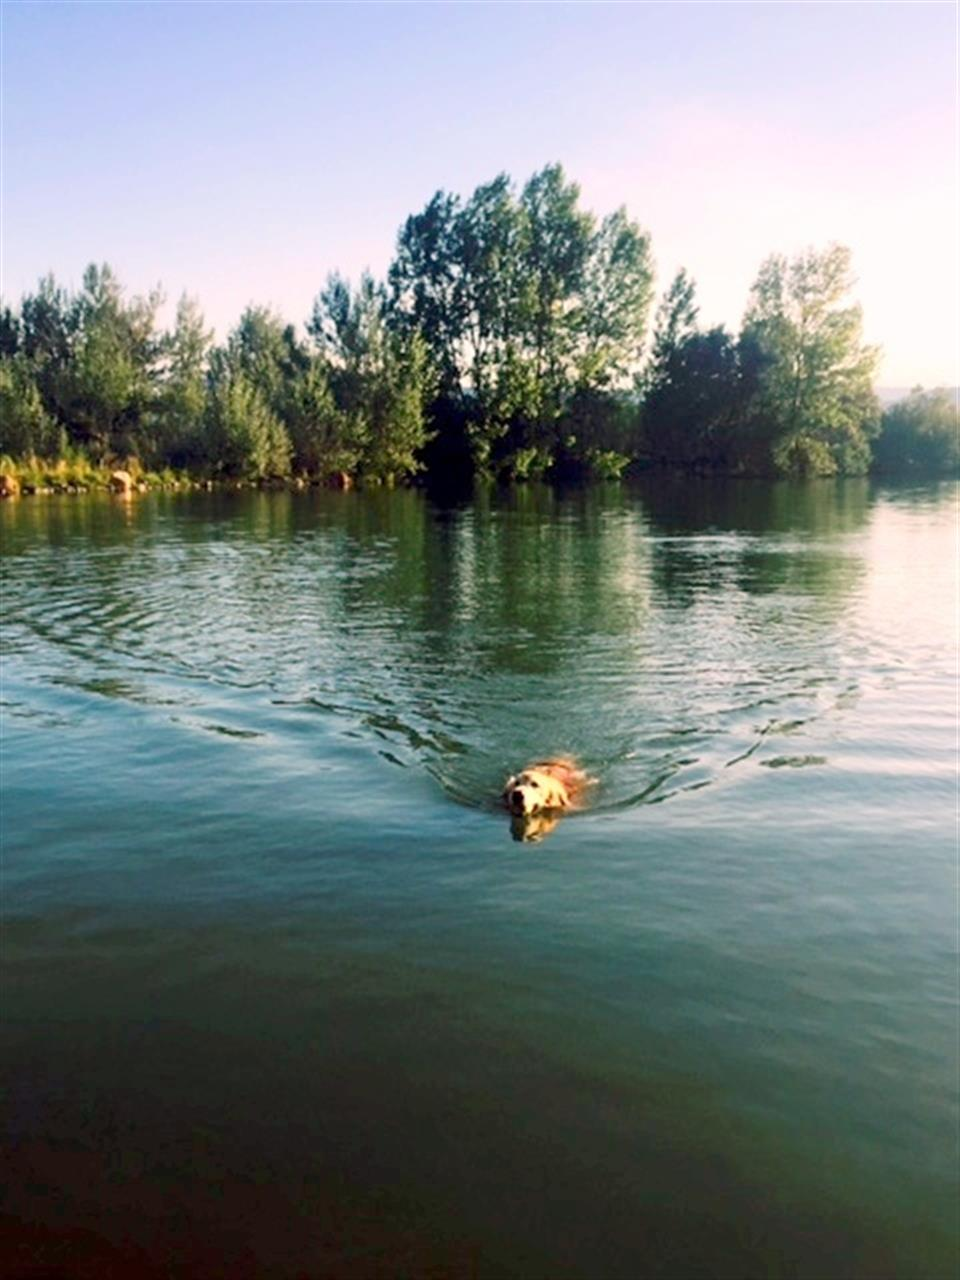 Coot Lake is a popular place for people to let their dogs swim. This is Sunny, my 10 yr old Golden Retriever.